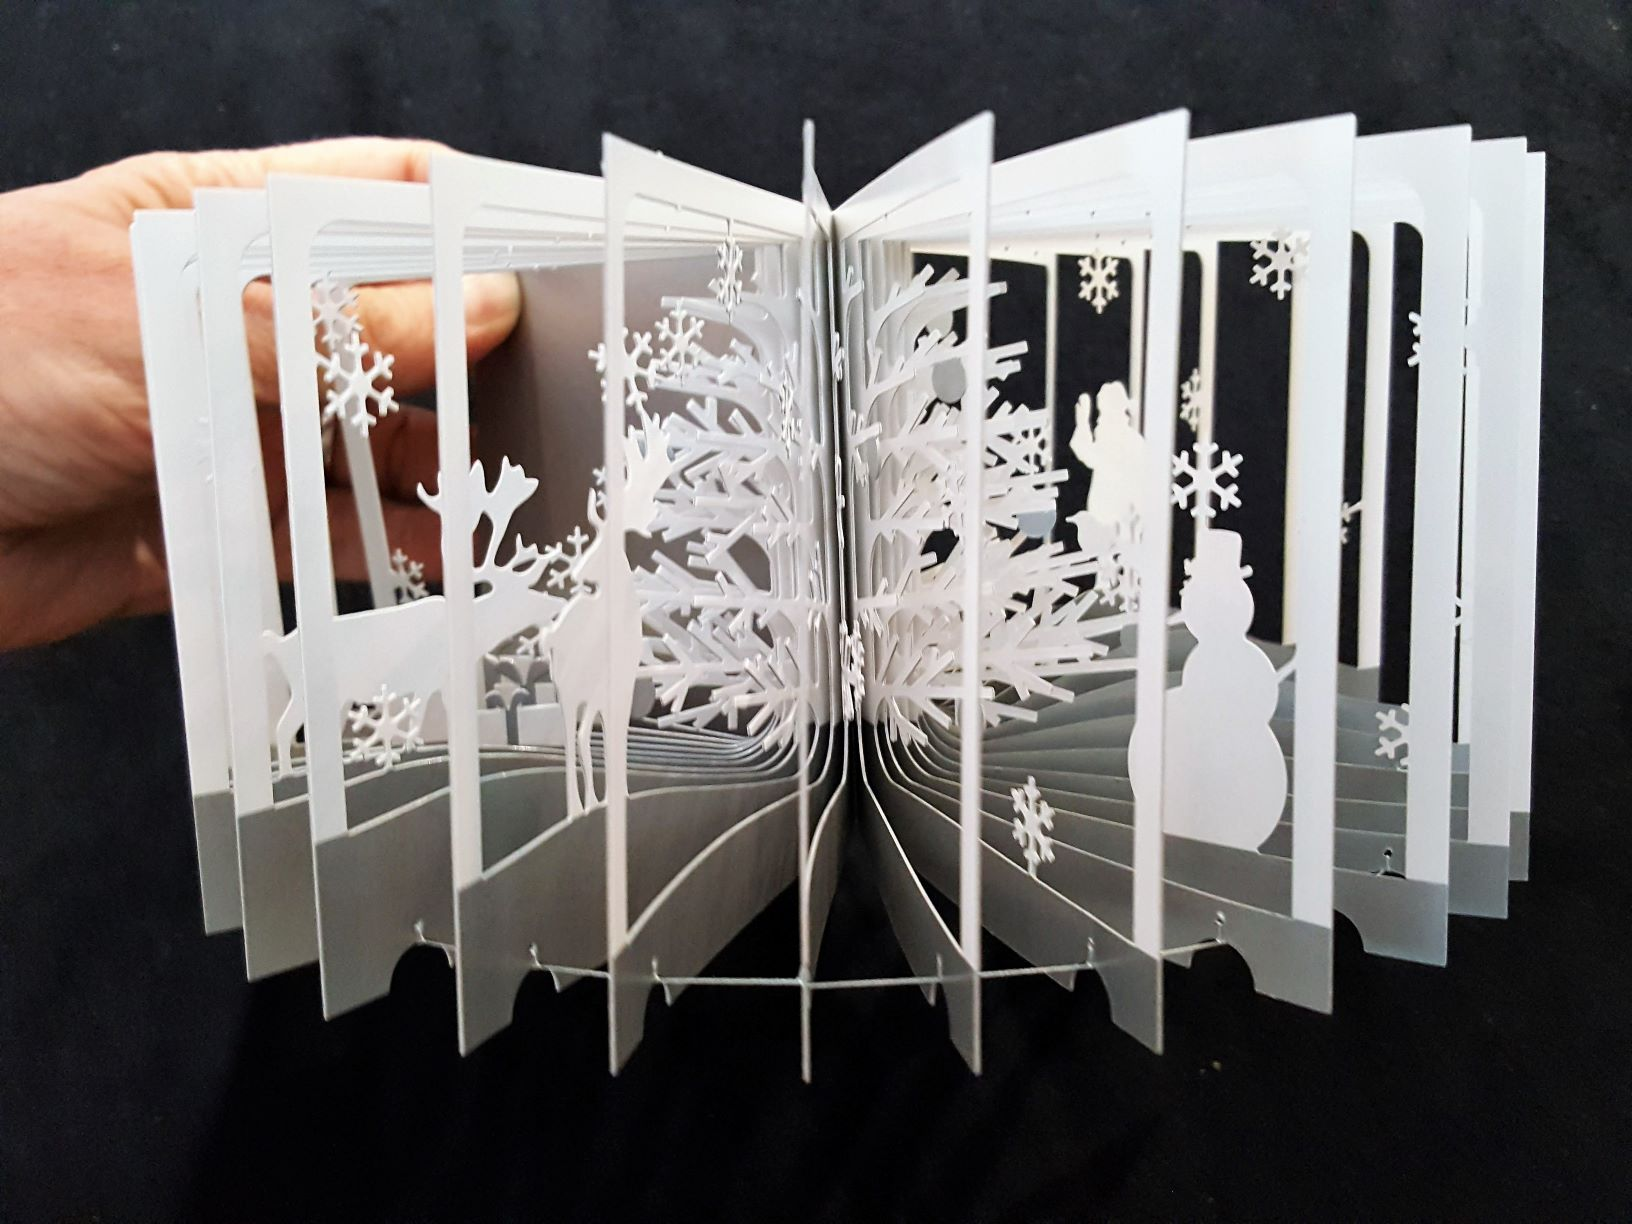 Image fetures the Snowy world : 360° book by Yusuke Oono.